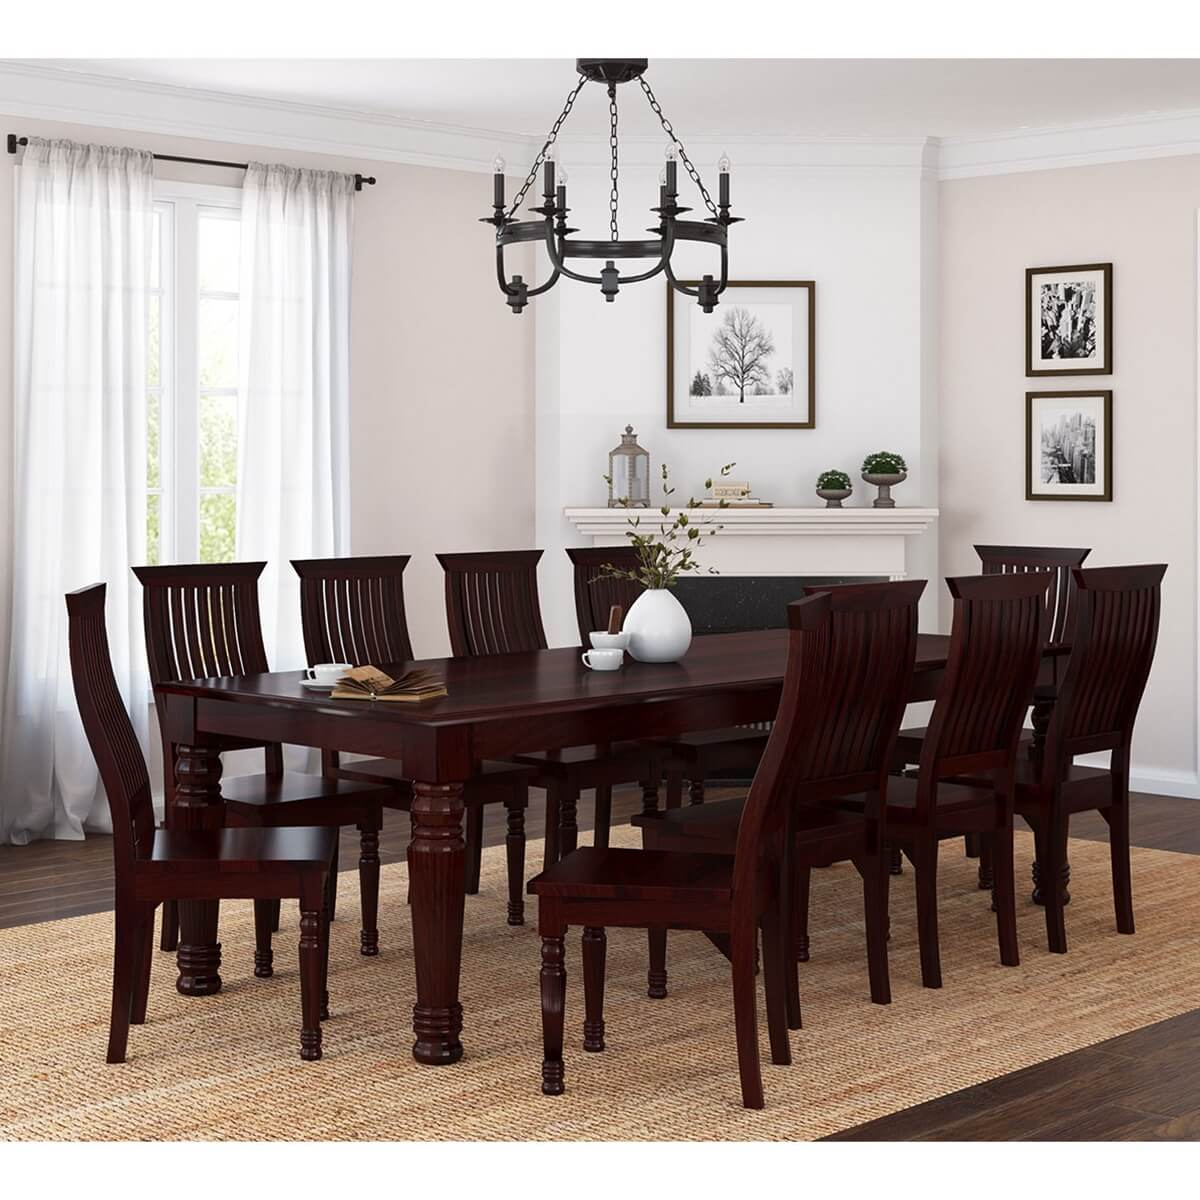 Dining Room Table For 10: Colonial American Large Rustic Wood Dining Table And 10